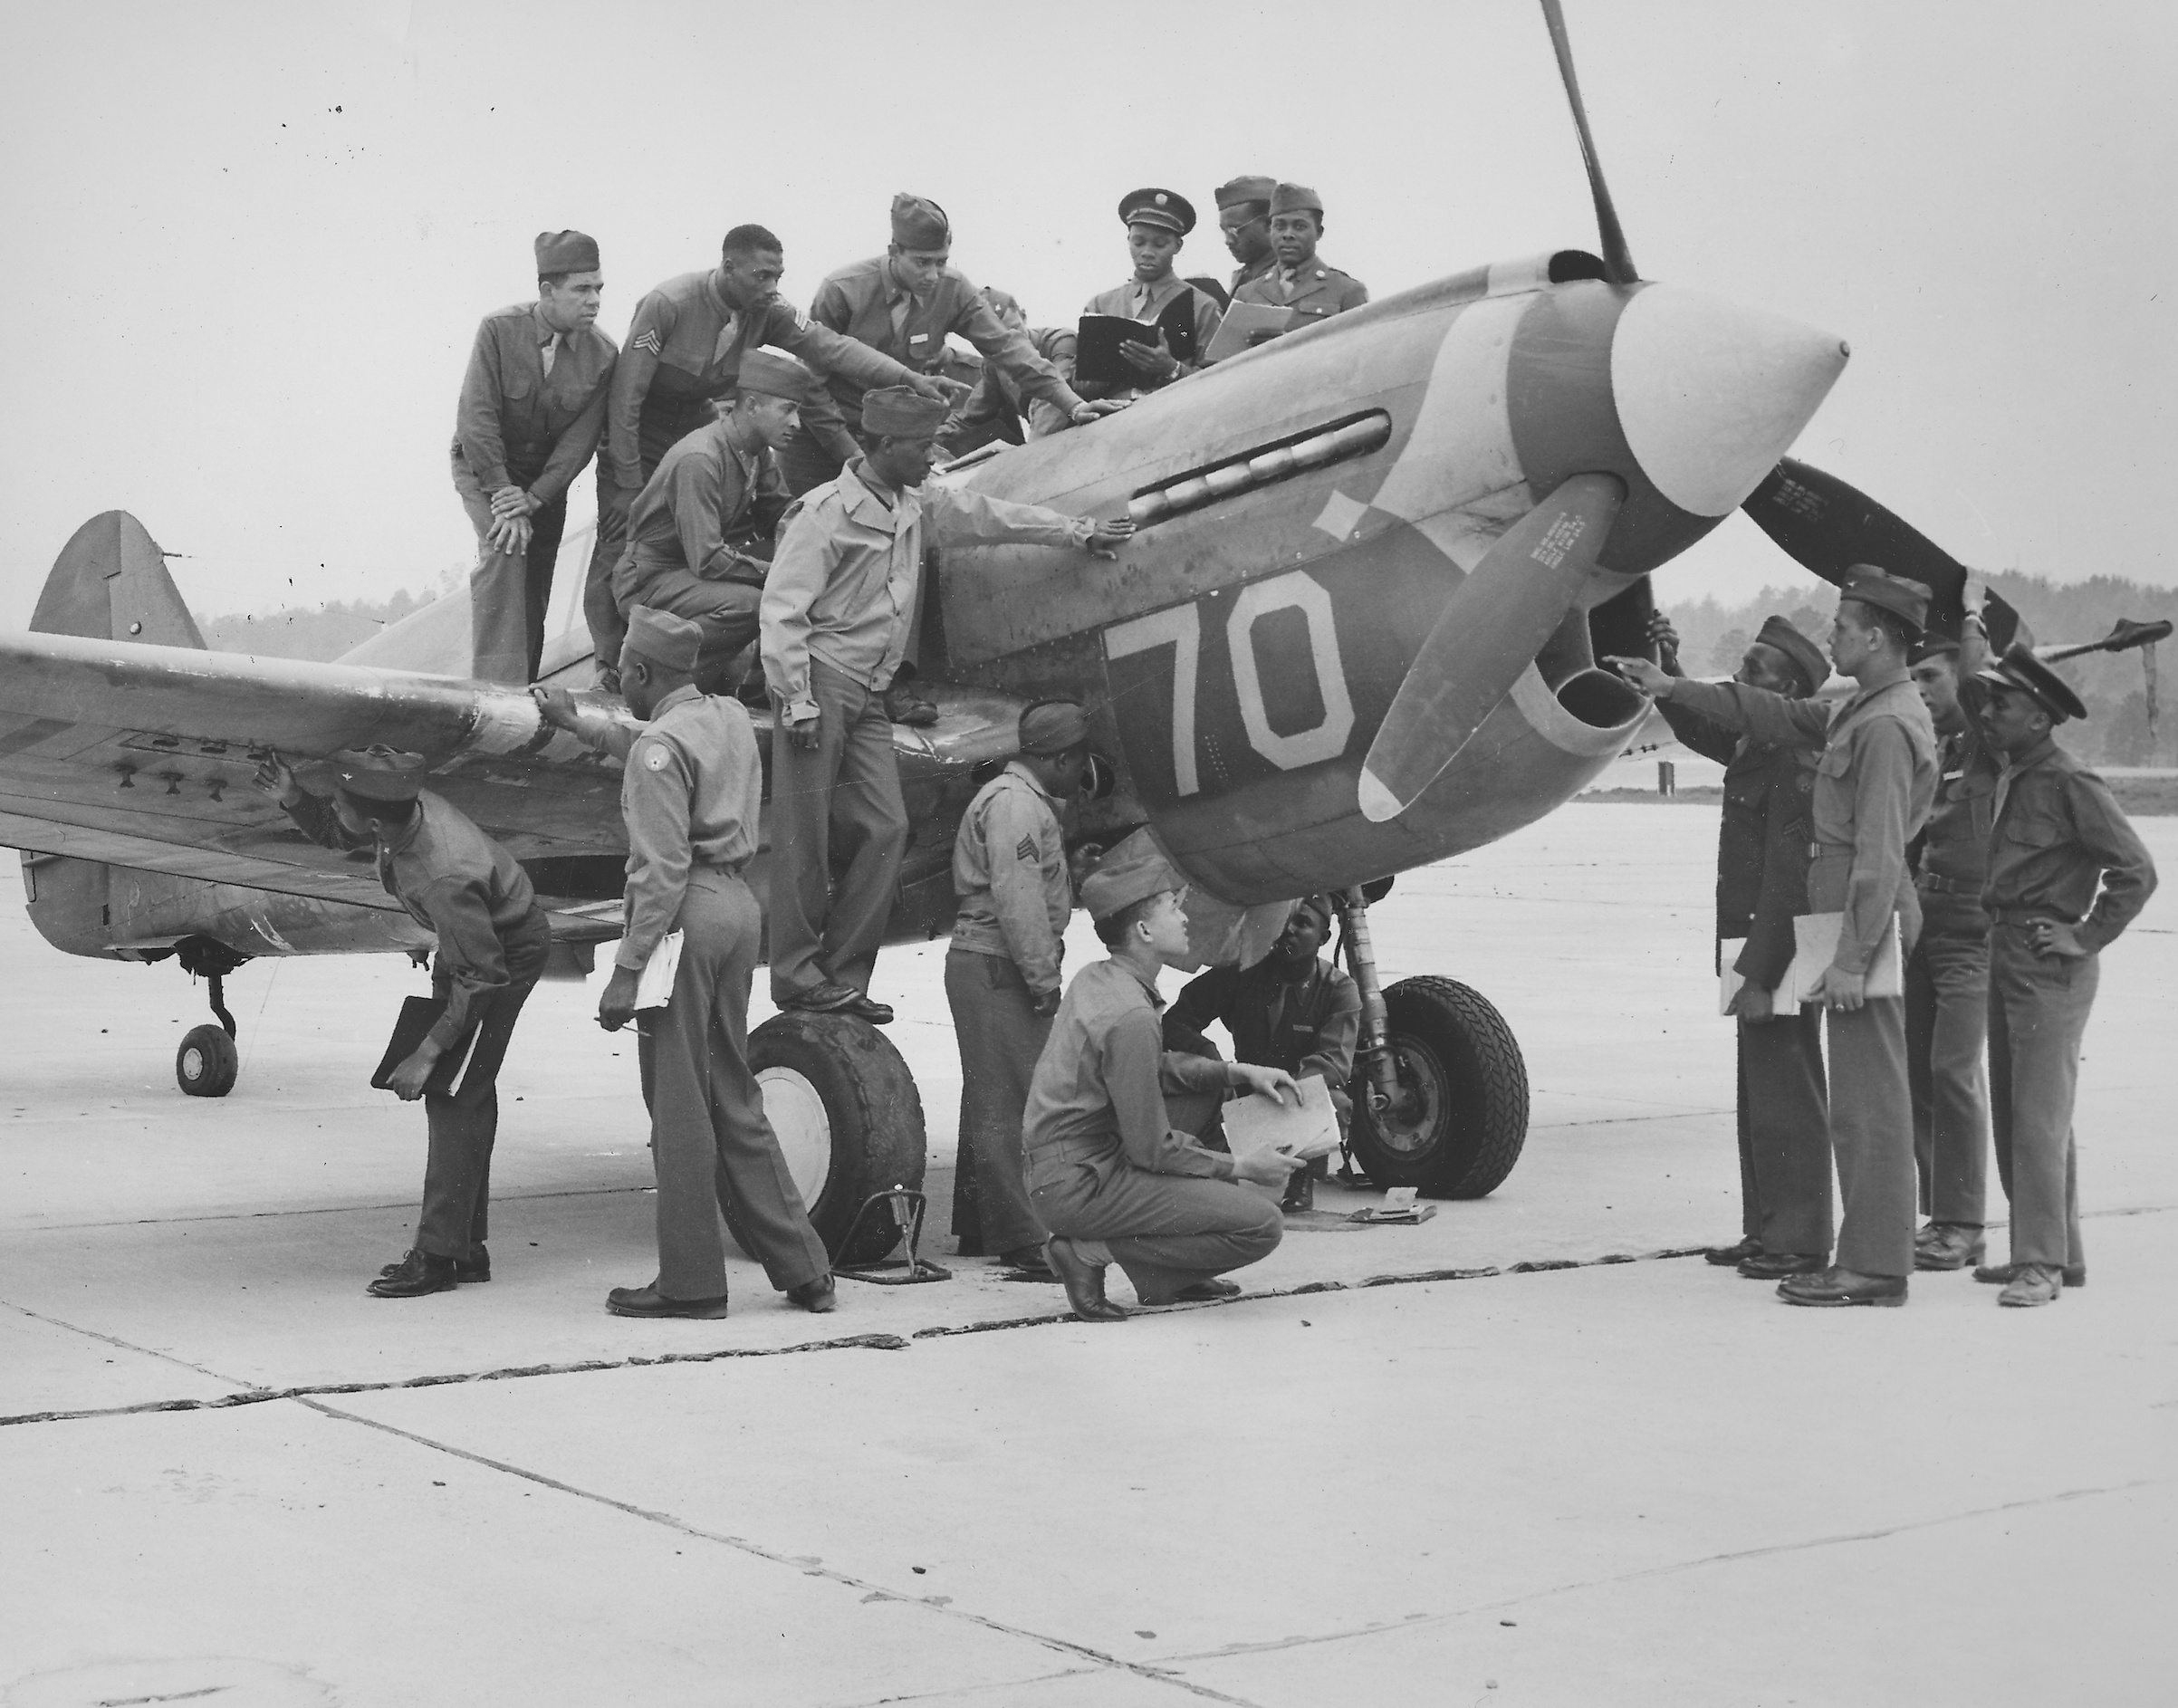 Tuskegee Airmen, with fighter airplane, at Tuskegee Army Flying School during World War II, Tuskegee, Ala., 1944.